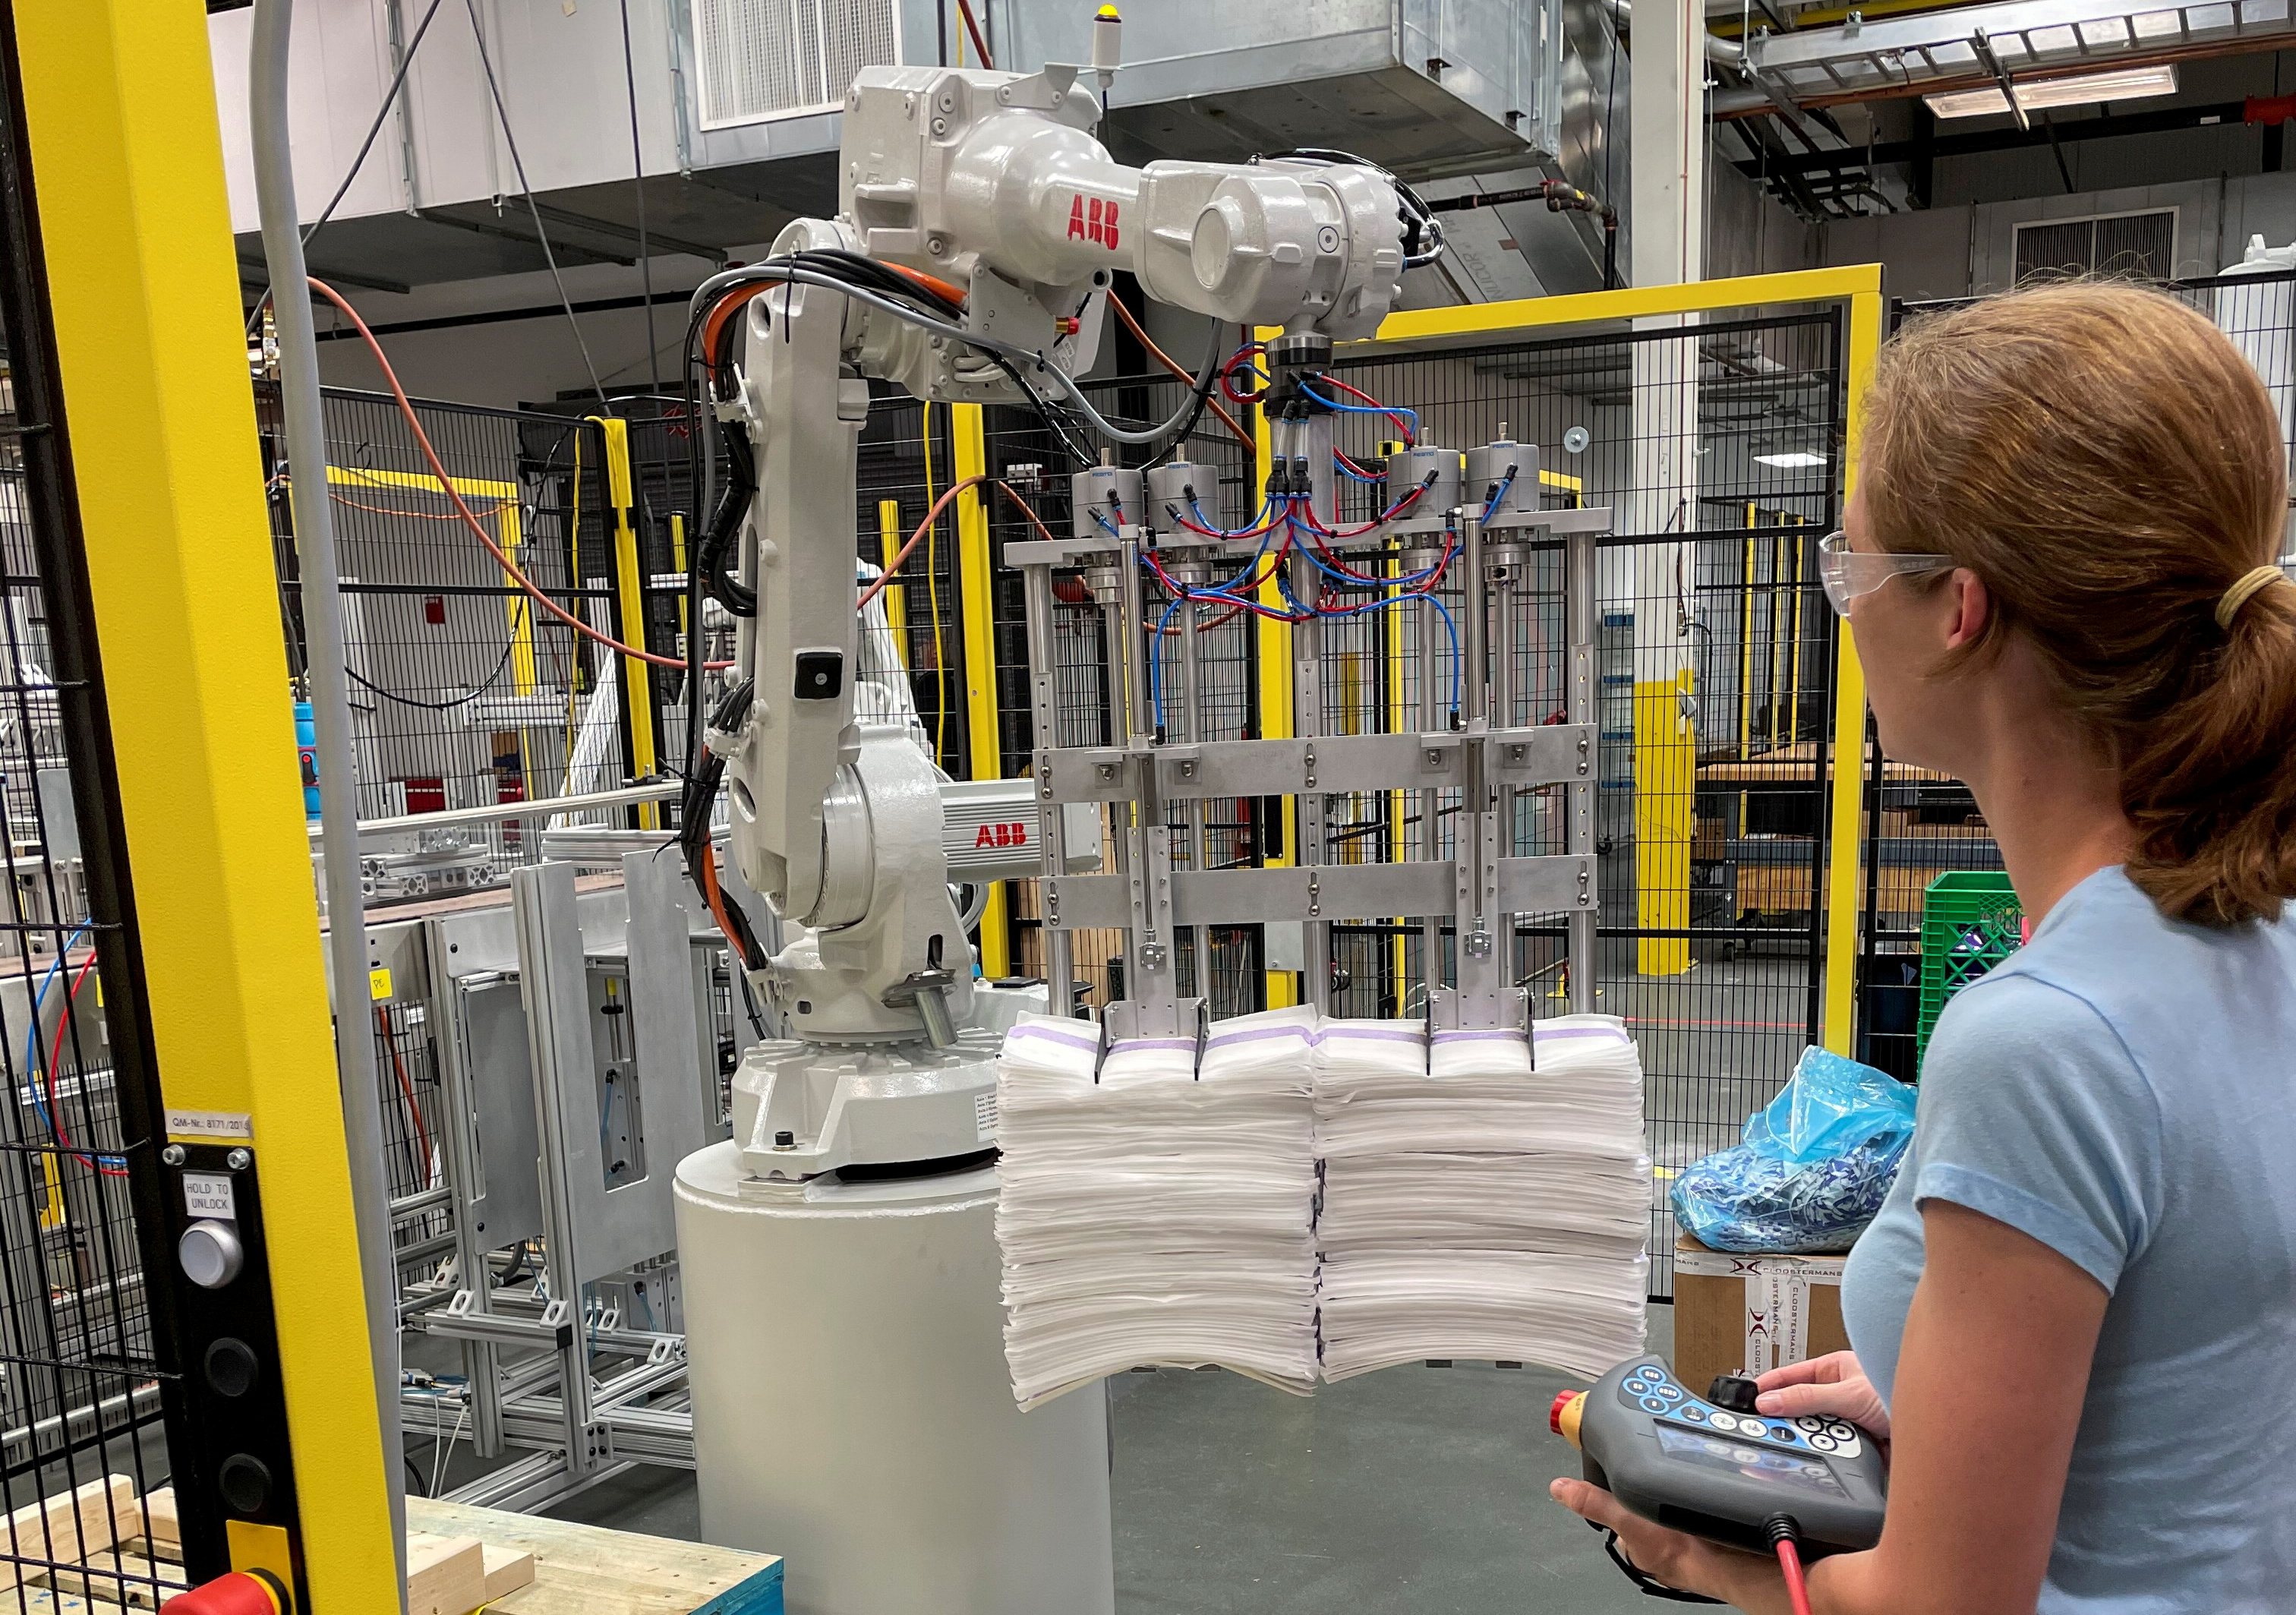 A researcher at Procter & Gamble's CoRE Fabric and Home Care Robotics Laboratory works on a new robot for handling sheets used in the company's floor care products, in Cincinnati, Ohio, U.S., May 27, 2021. REUTERS/Timothy Aeppel/File Photo